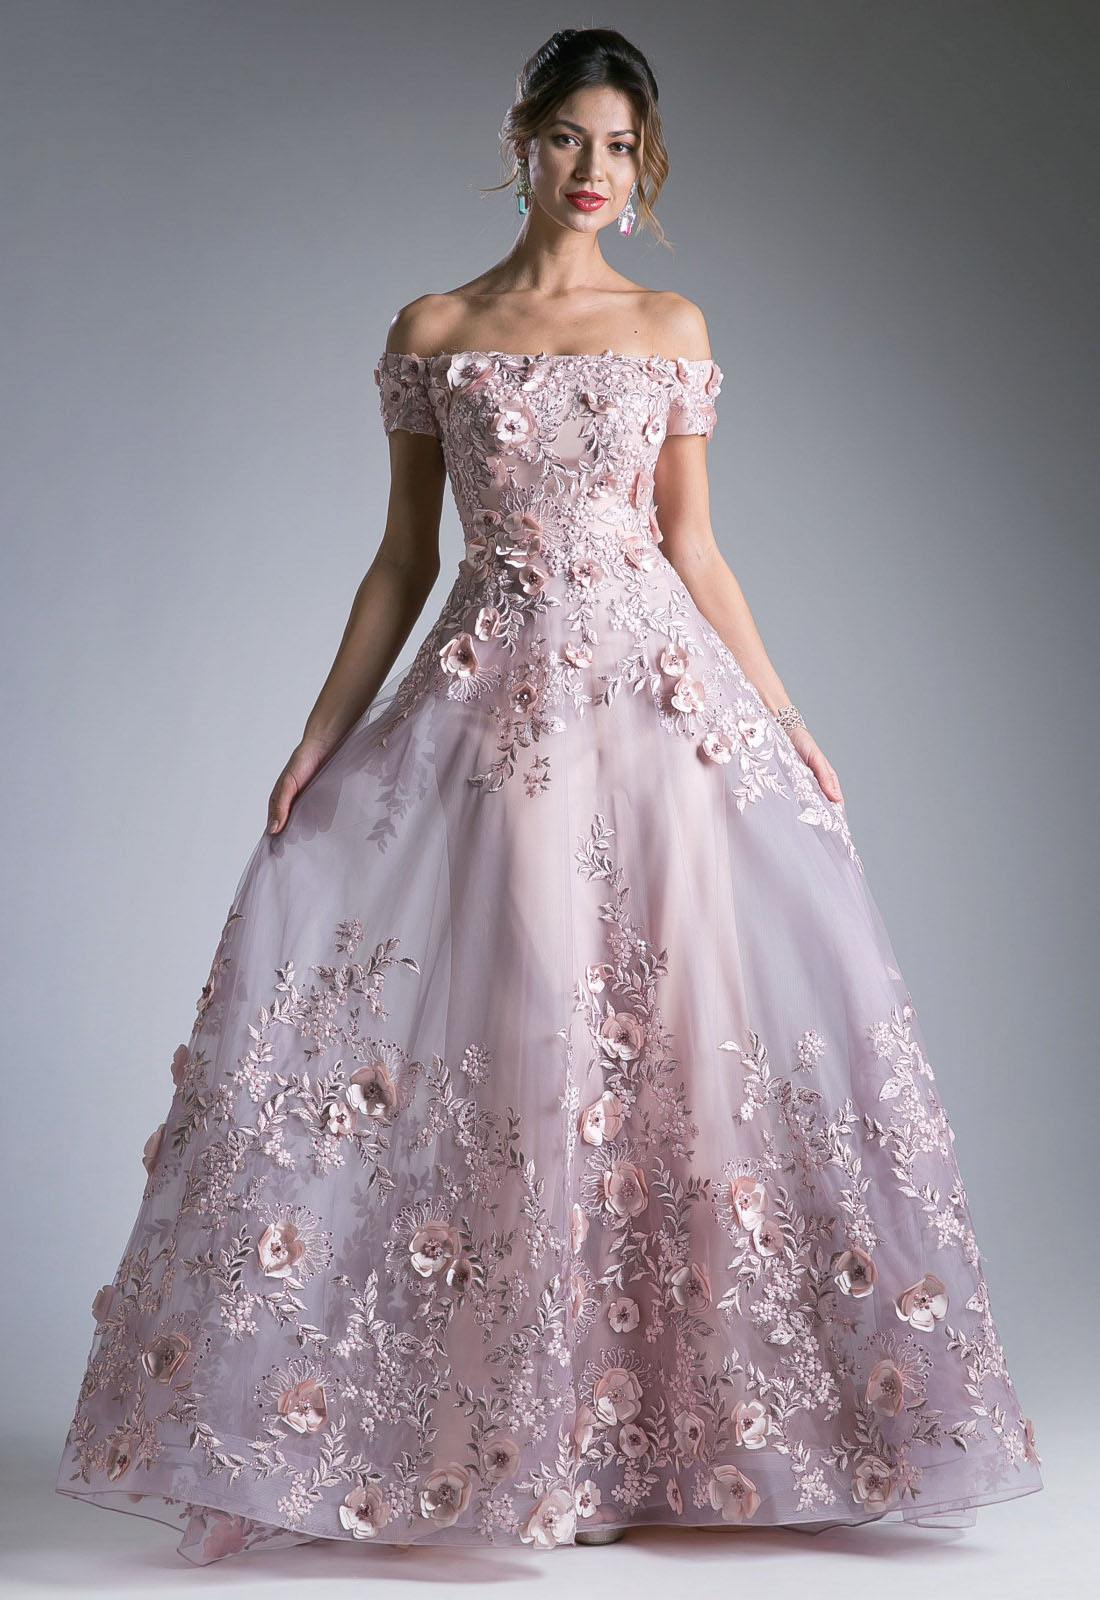 Dusty Rose Off The Shoulder Long Prom Dress With Appliques